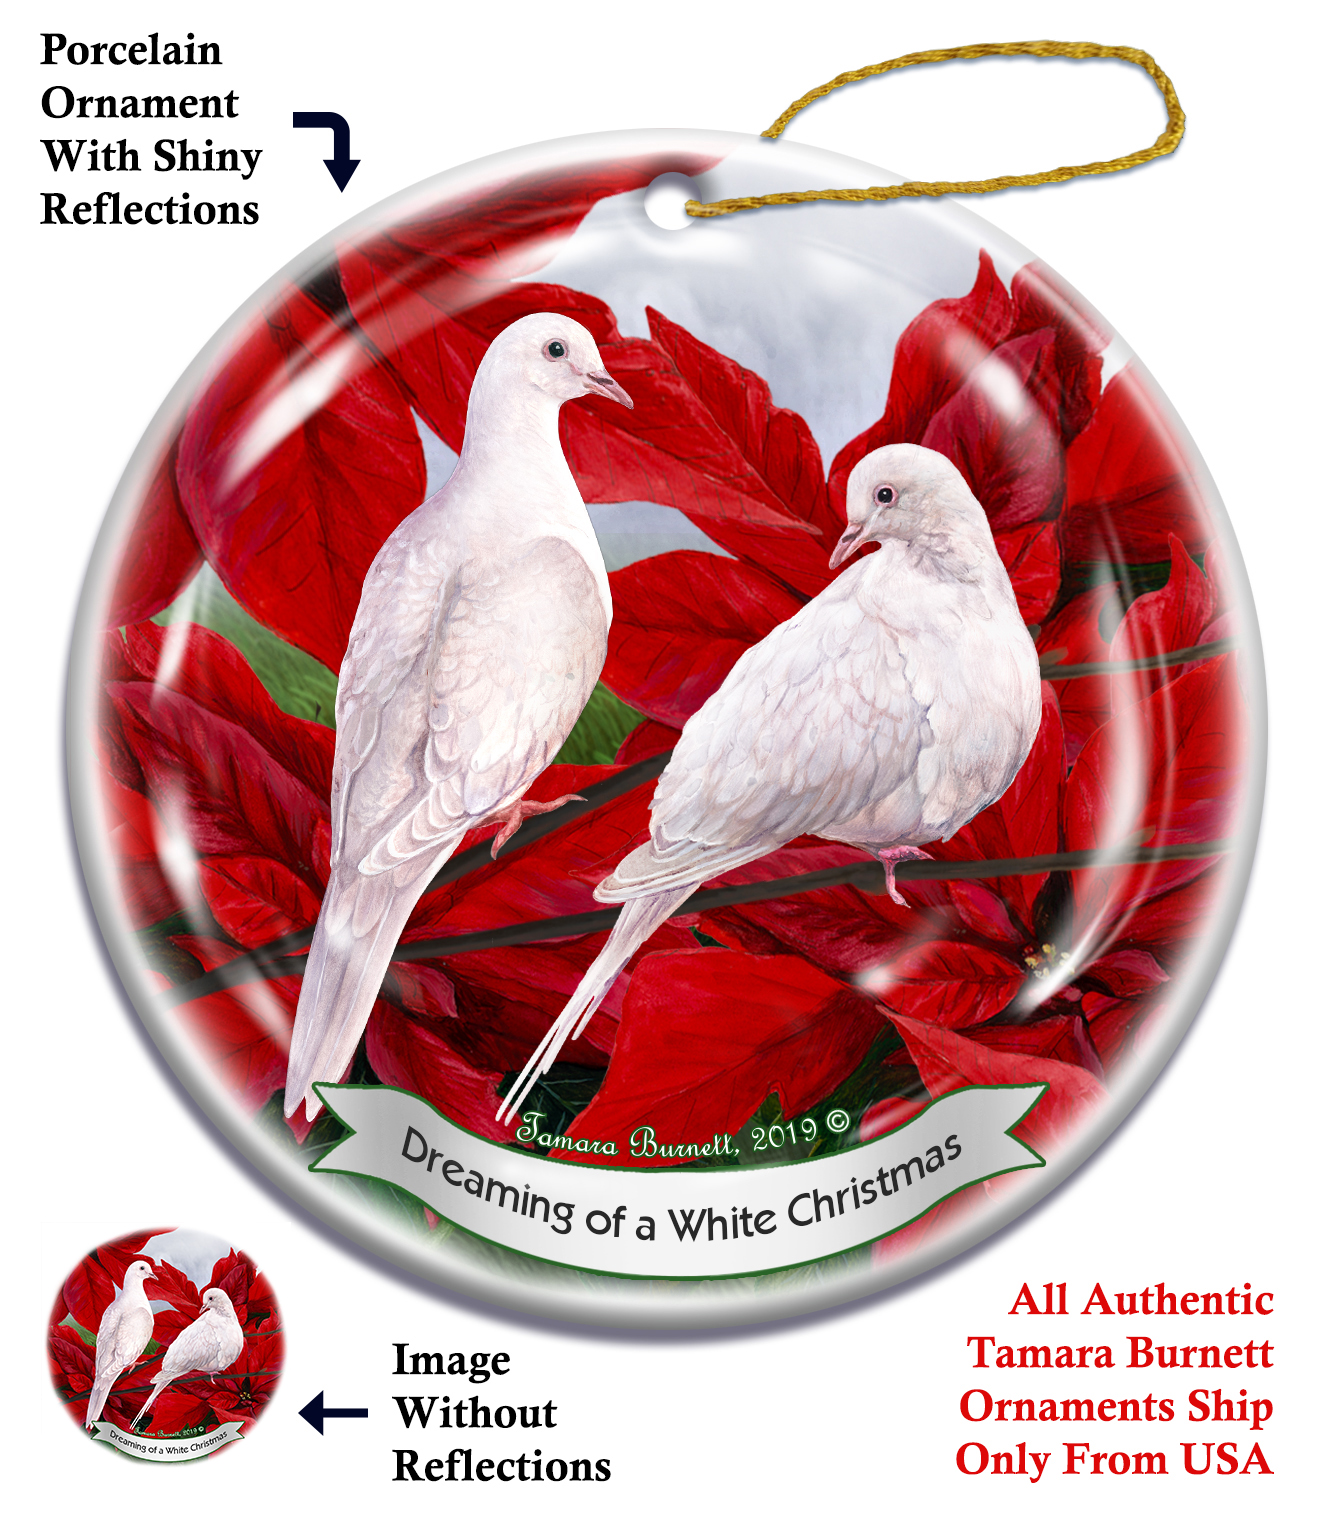 White Doves - Up To Snow Good Ornament Image